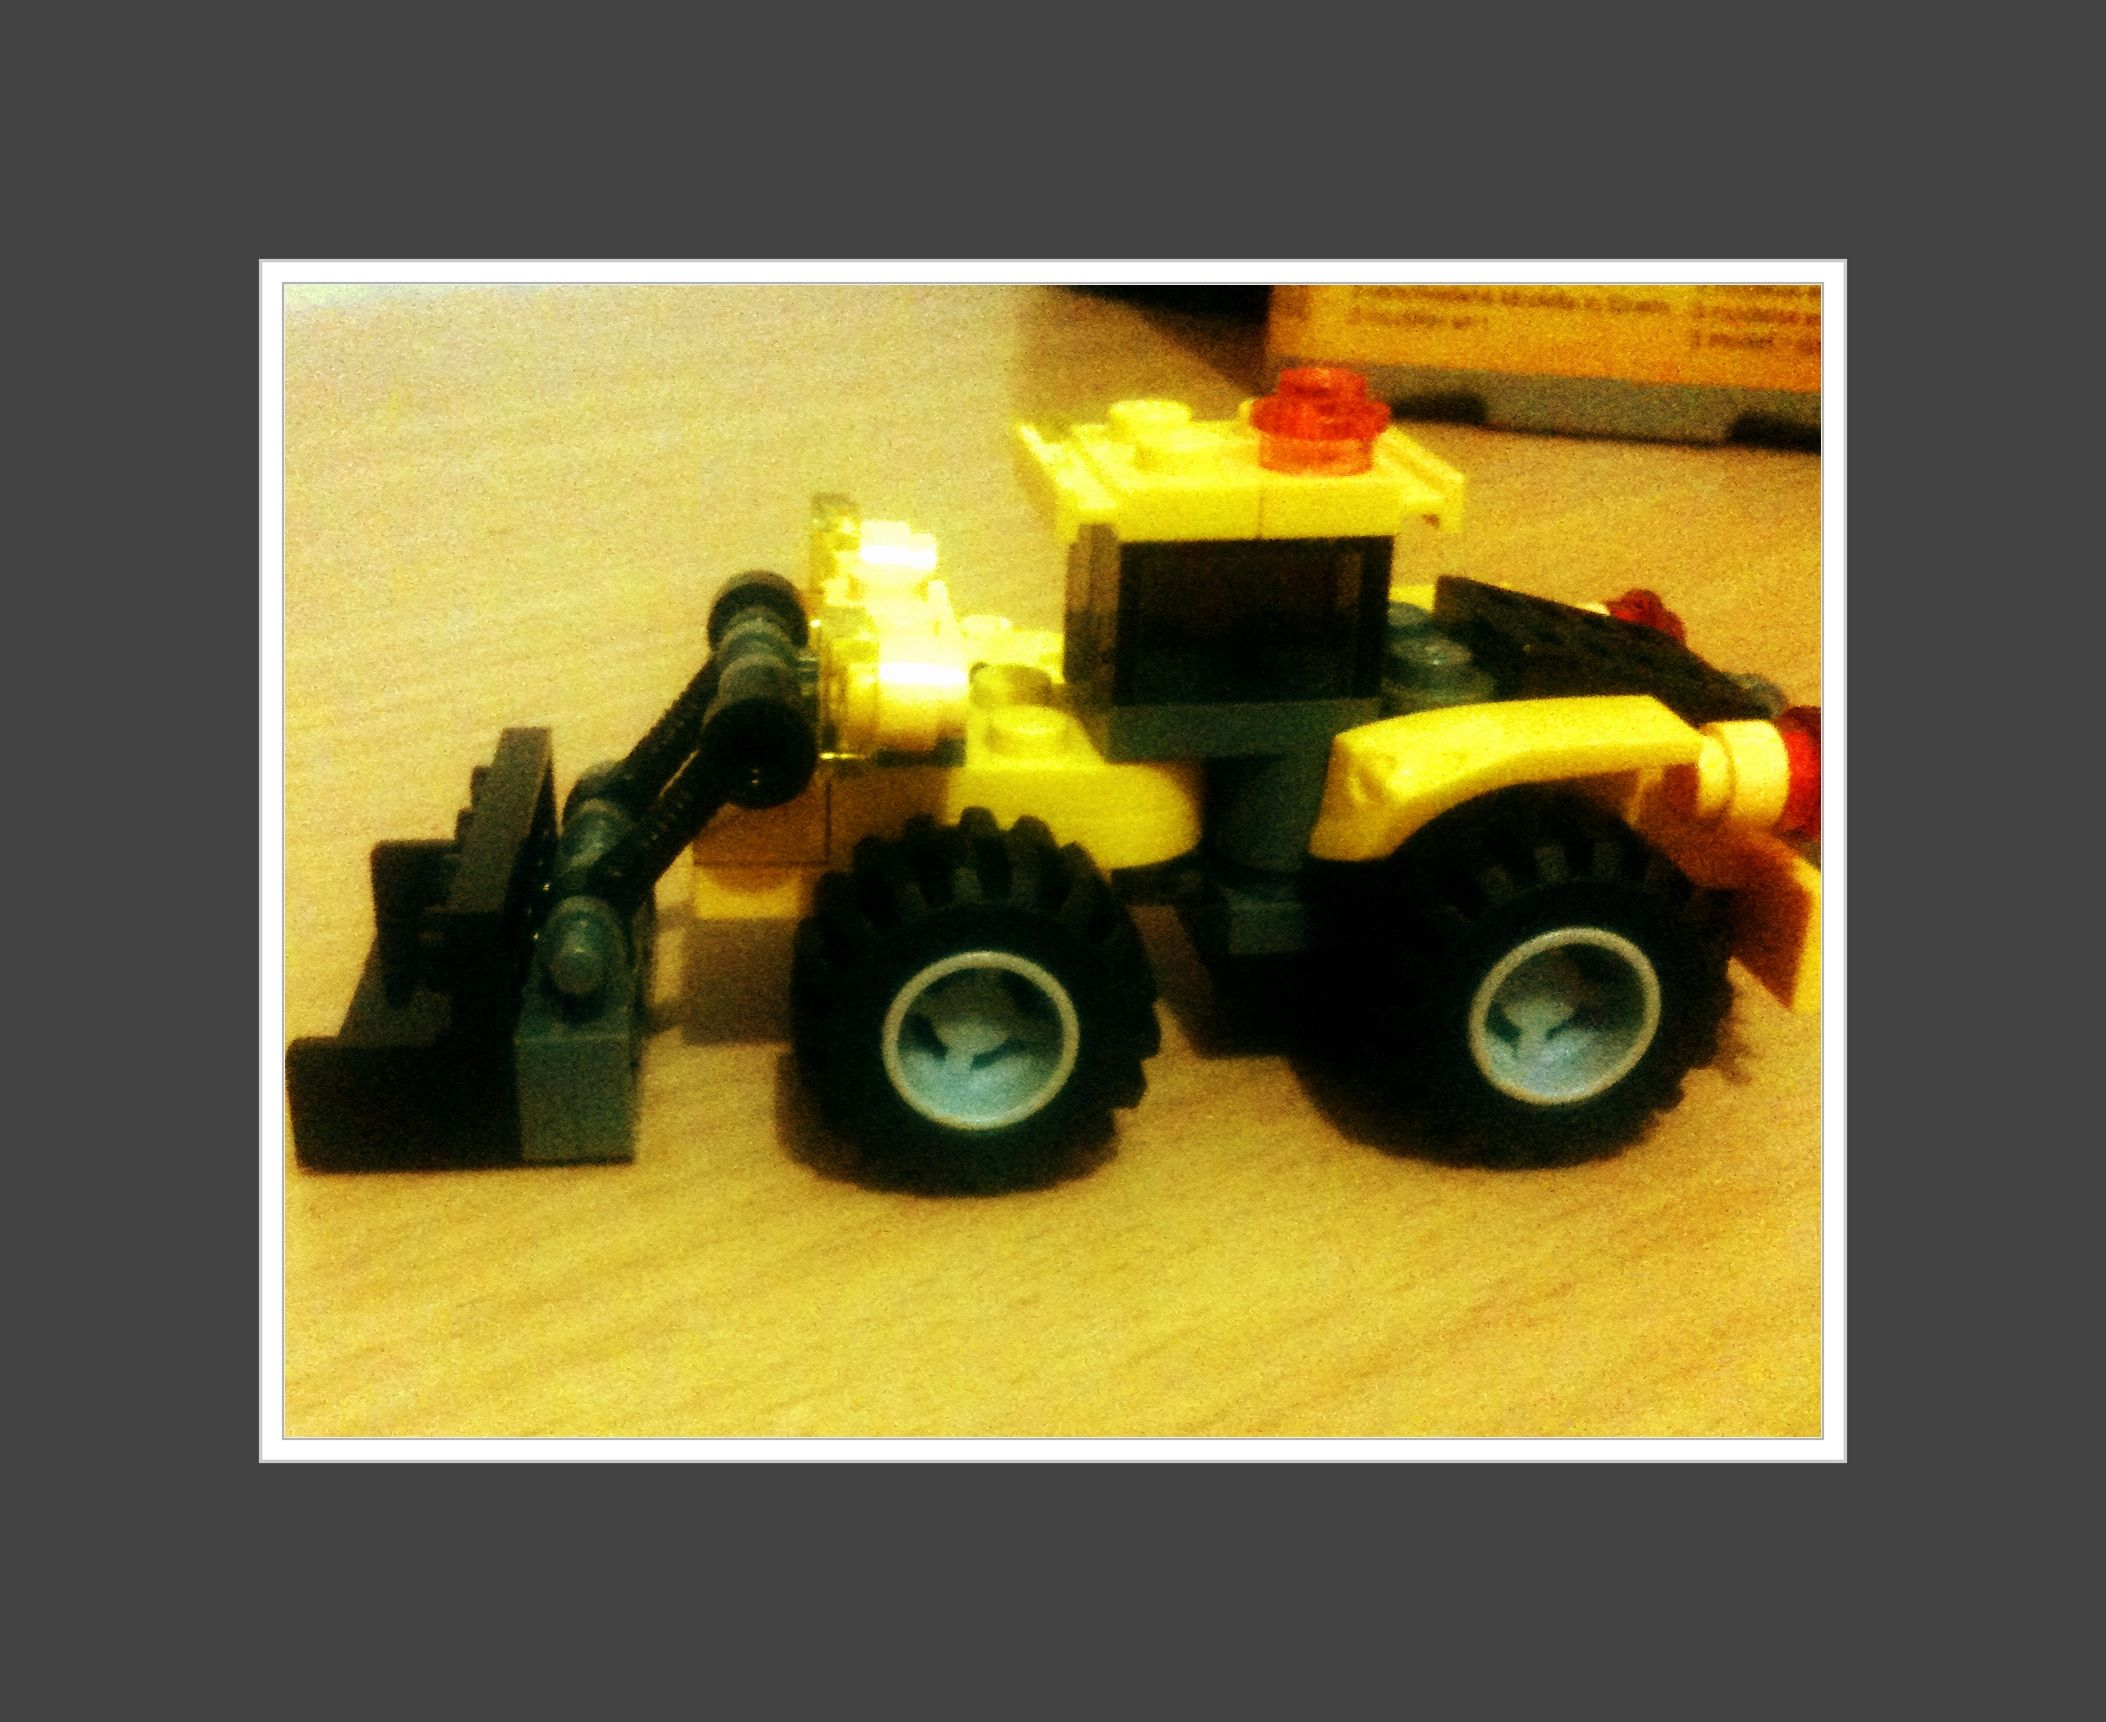 A lego truck it s amazing that you can build 3 three designs of